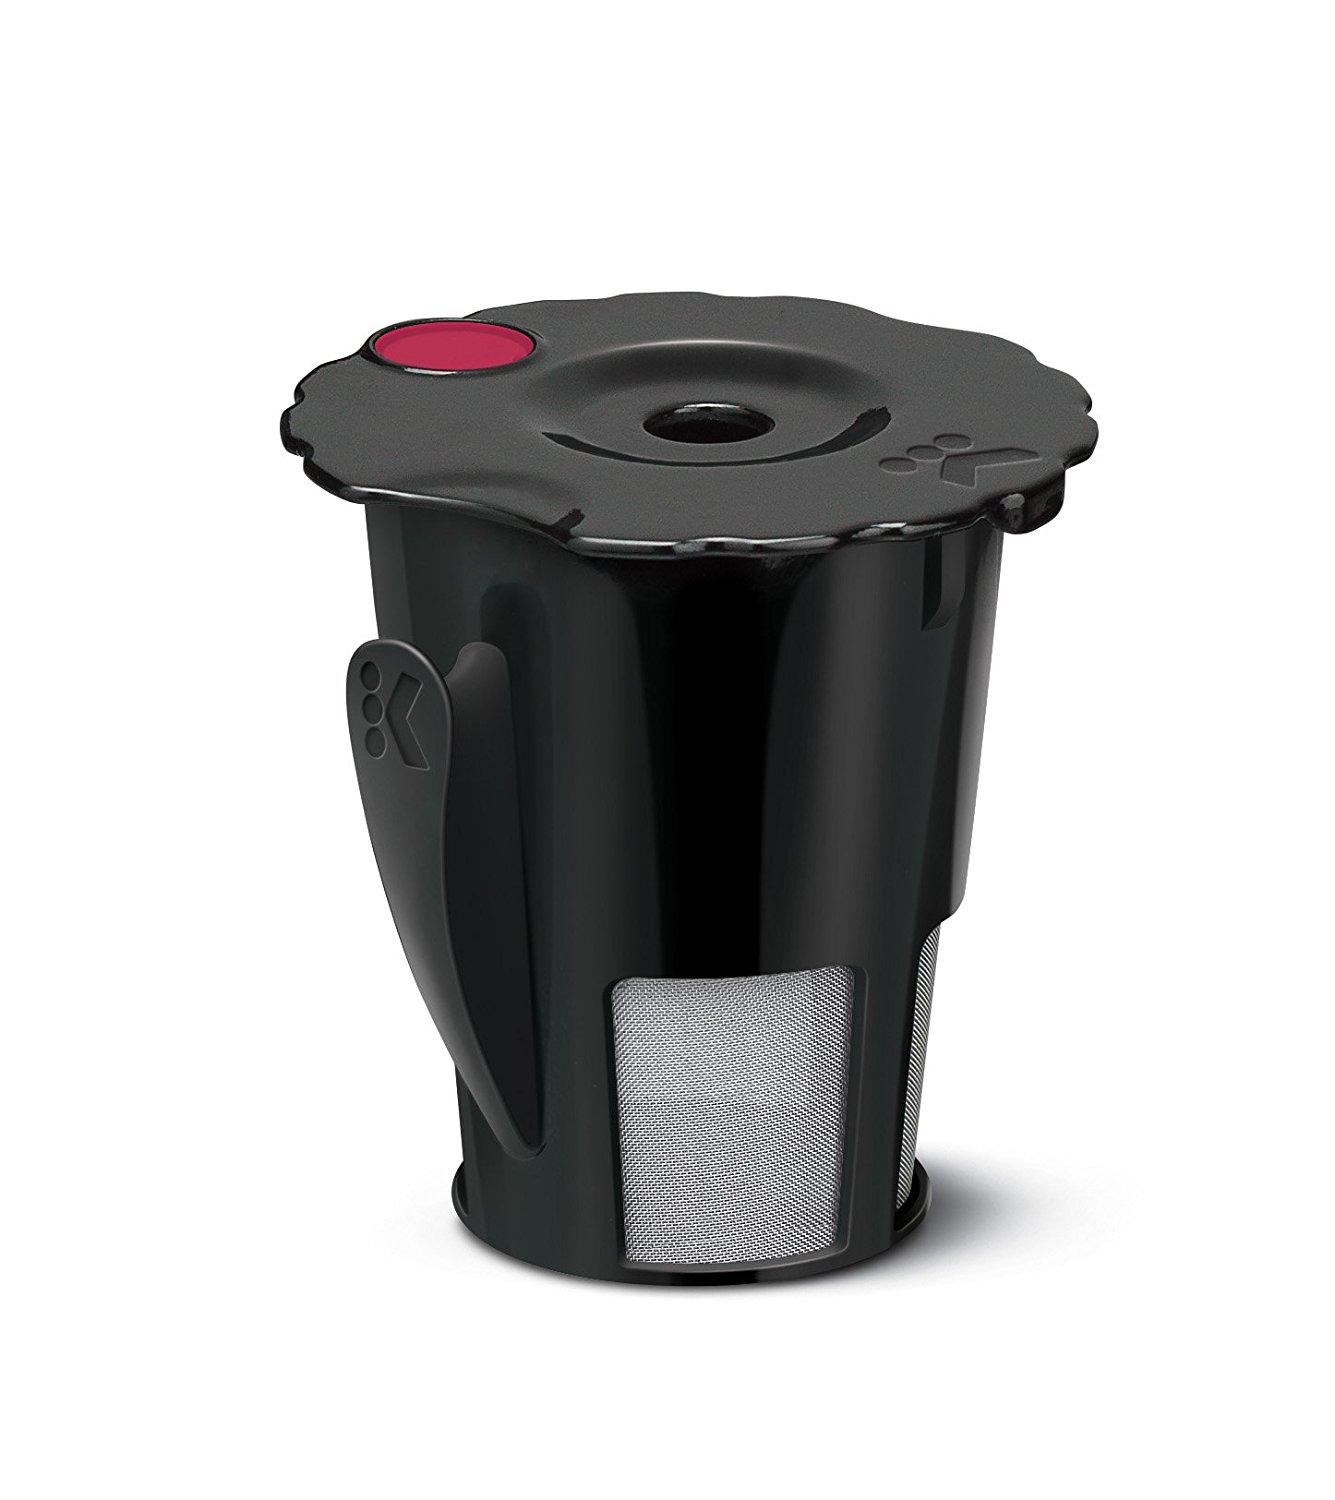 119367 2.0 My K-Cup Reusable Coffee Filter, Small, Black (Updated Model), Ship from USA,Brand Keurig by